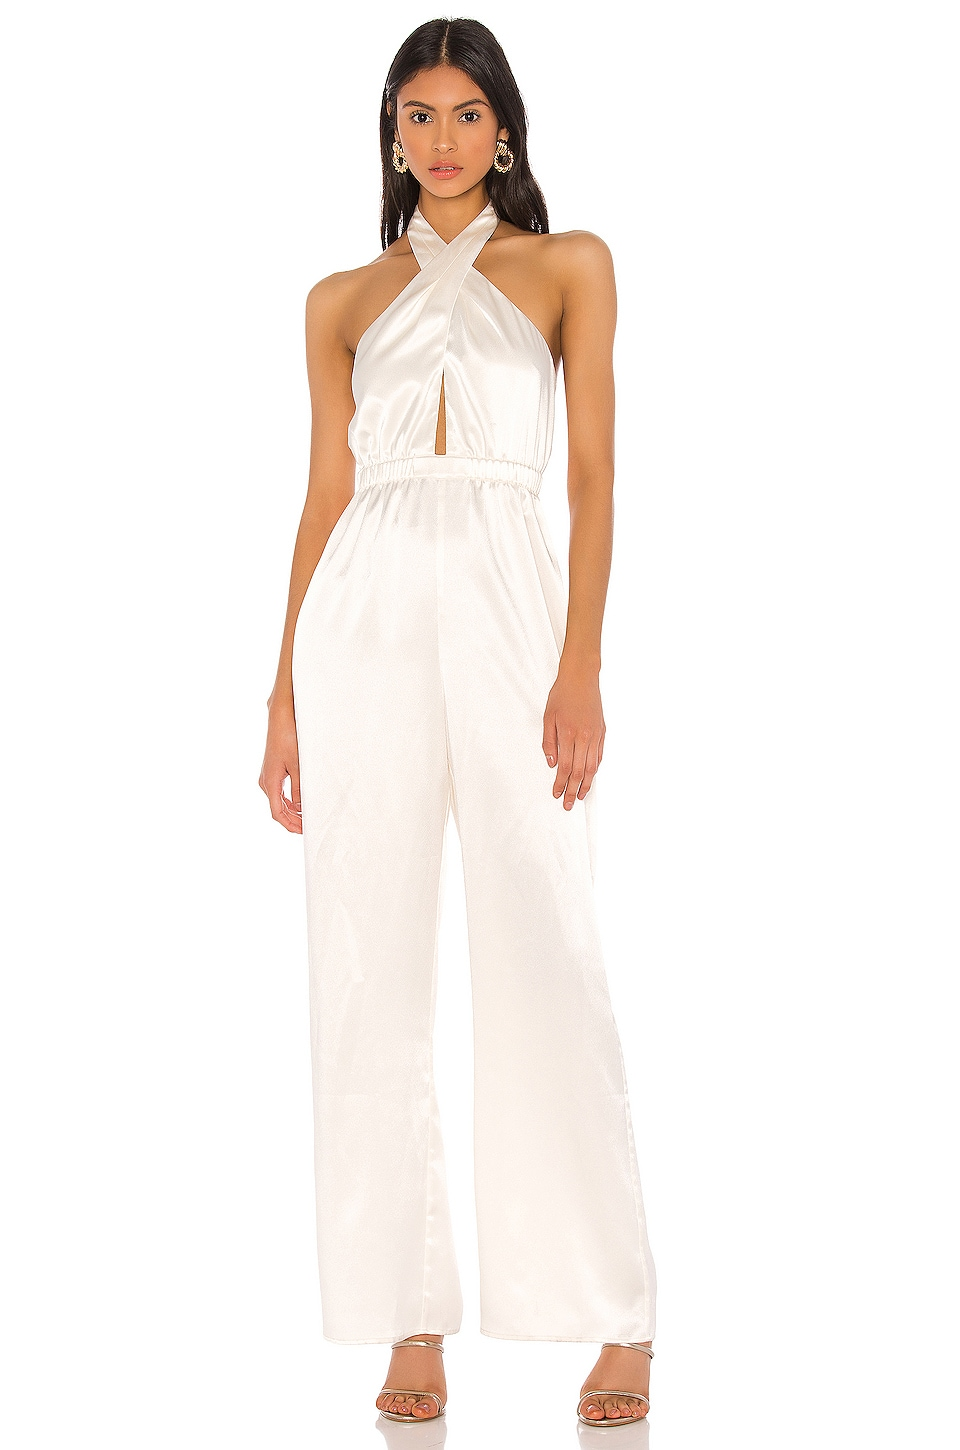 MAJORELLE Voltaire Jumpsuit in Ivory